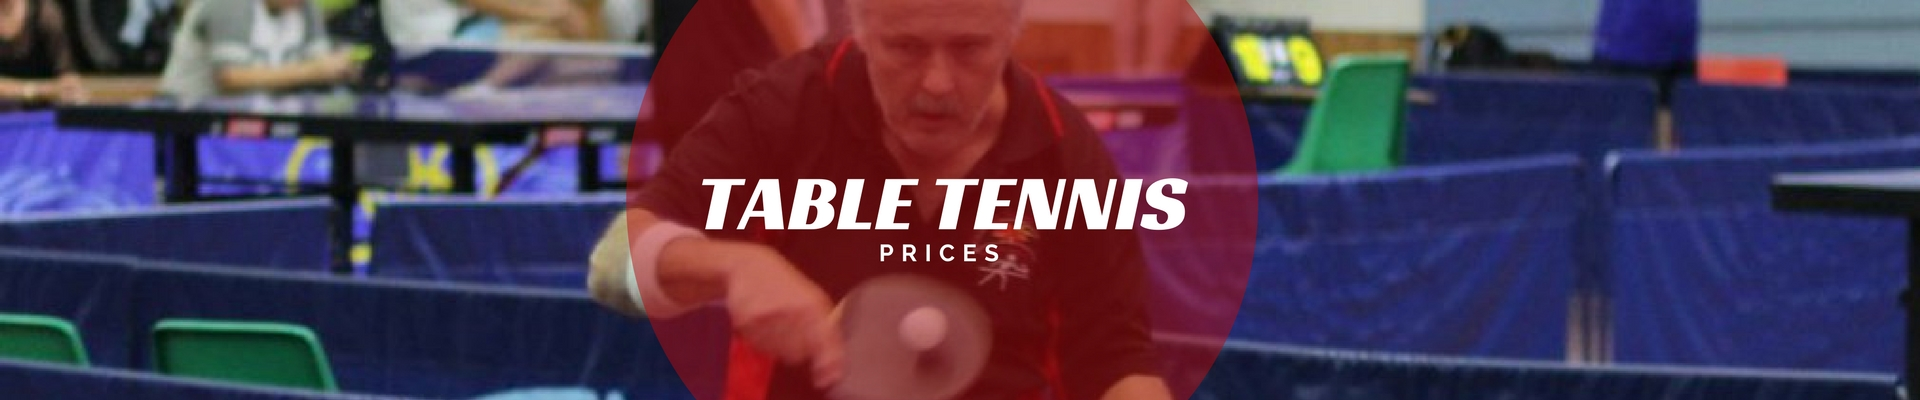 table tennis prices